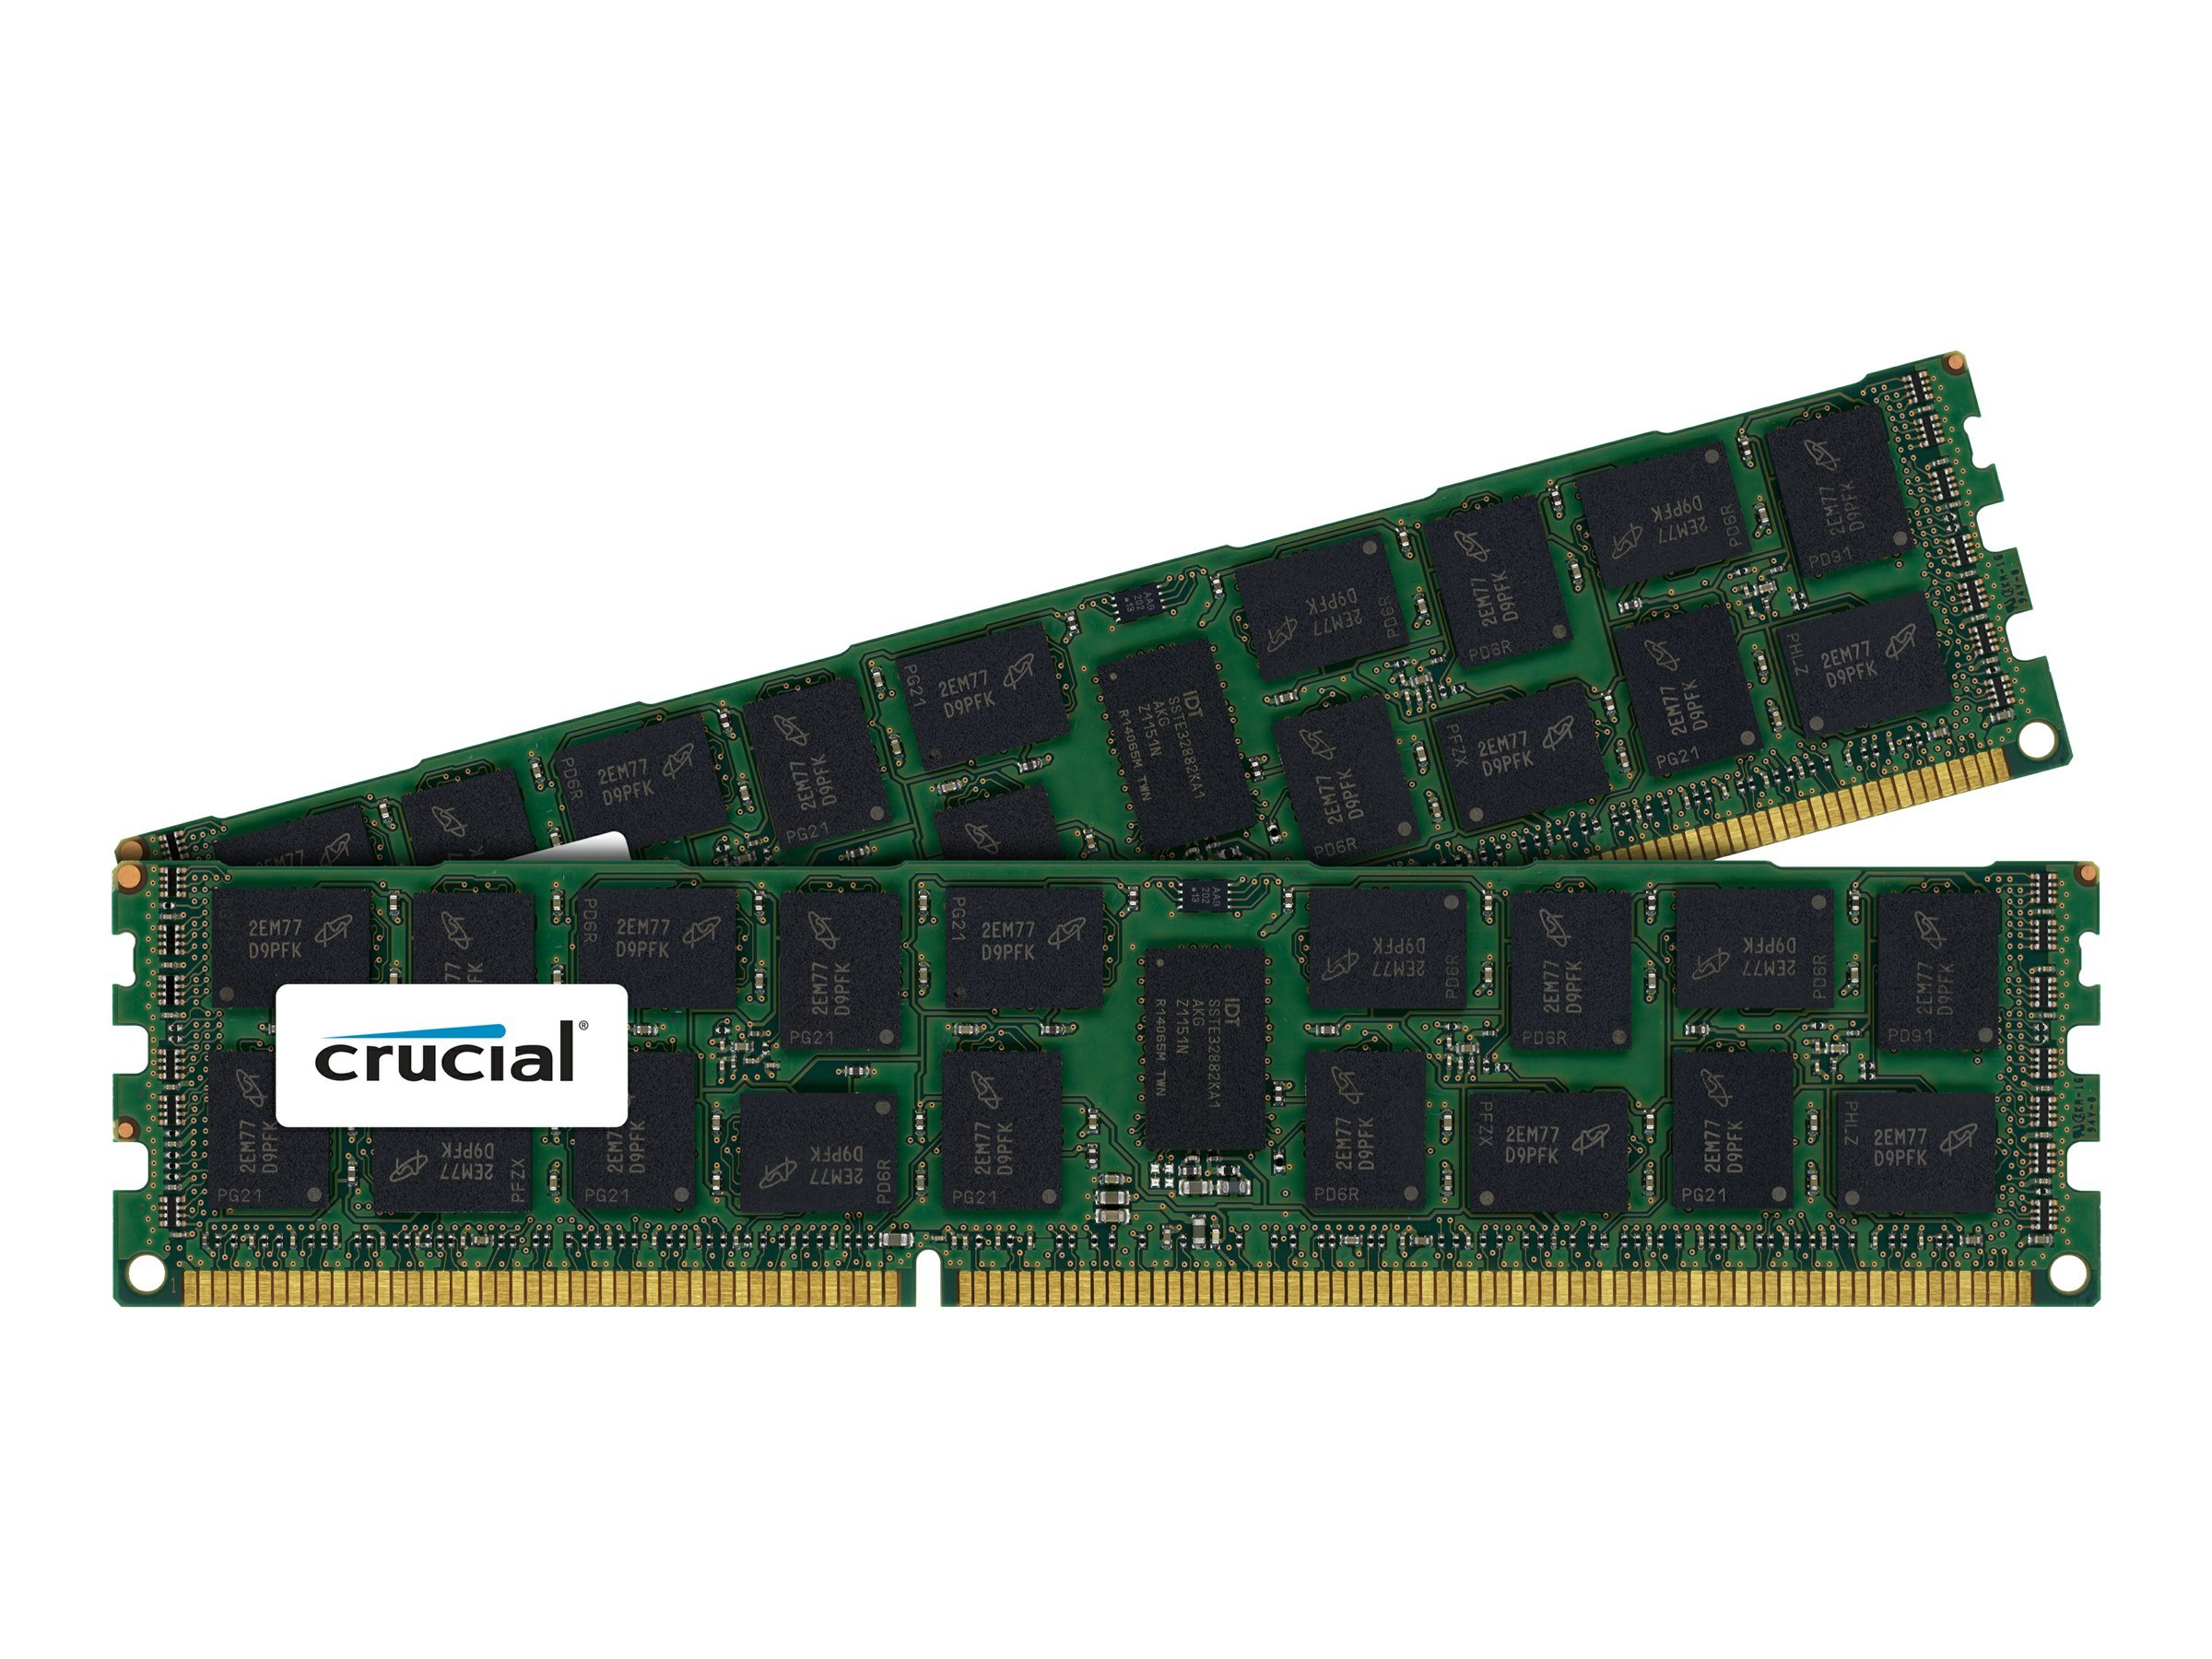 Crucial 64GB PC3-8500 240-pin DDR3 SDRAM DIMM Kit, CT2K32G3ERSLQ41067, 15895468, Memory